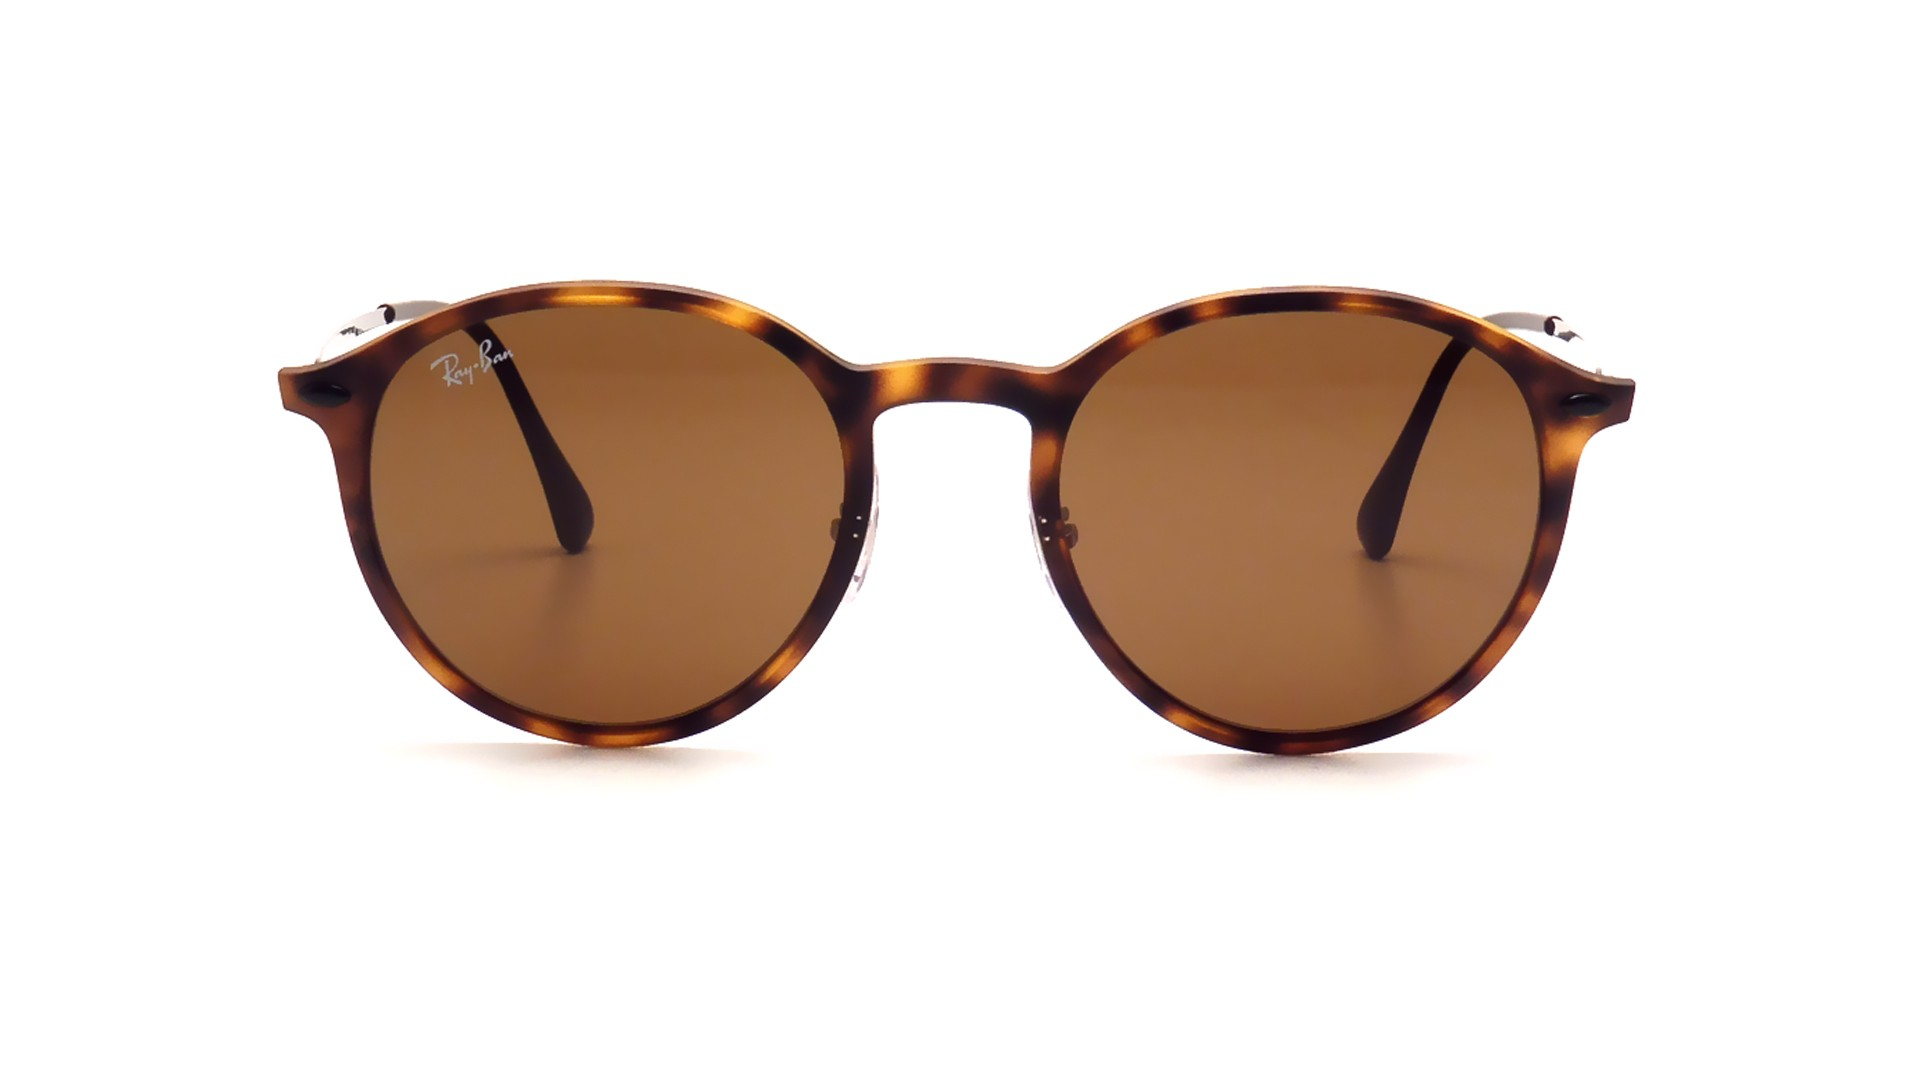 570411f29f4395 Lunettes de soleil Ray-Ban Round Havana Light Ray Écaille RB4224 894 73 49- 20 Medium